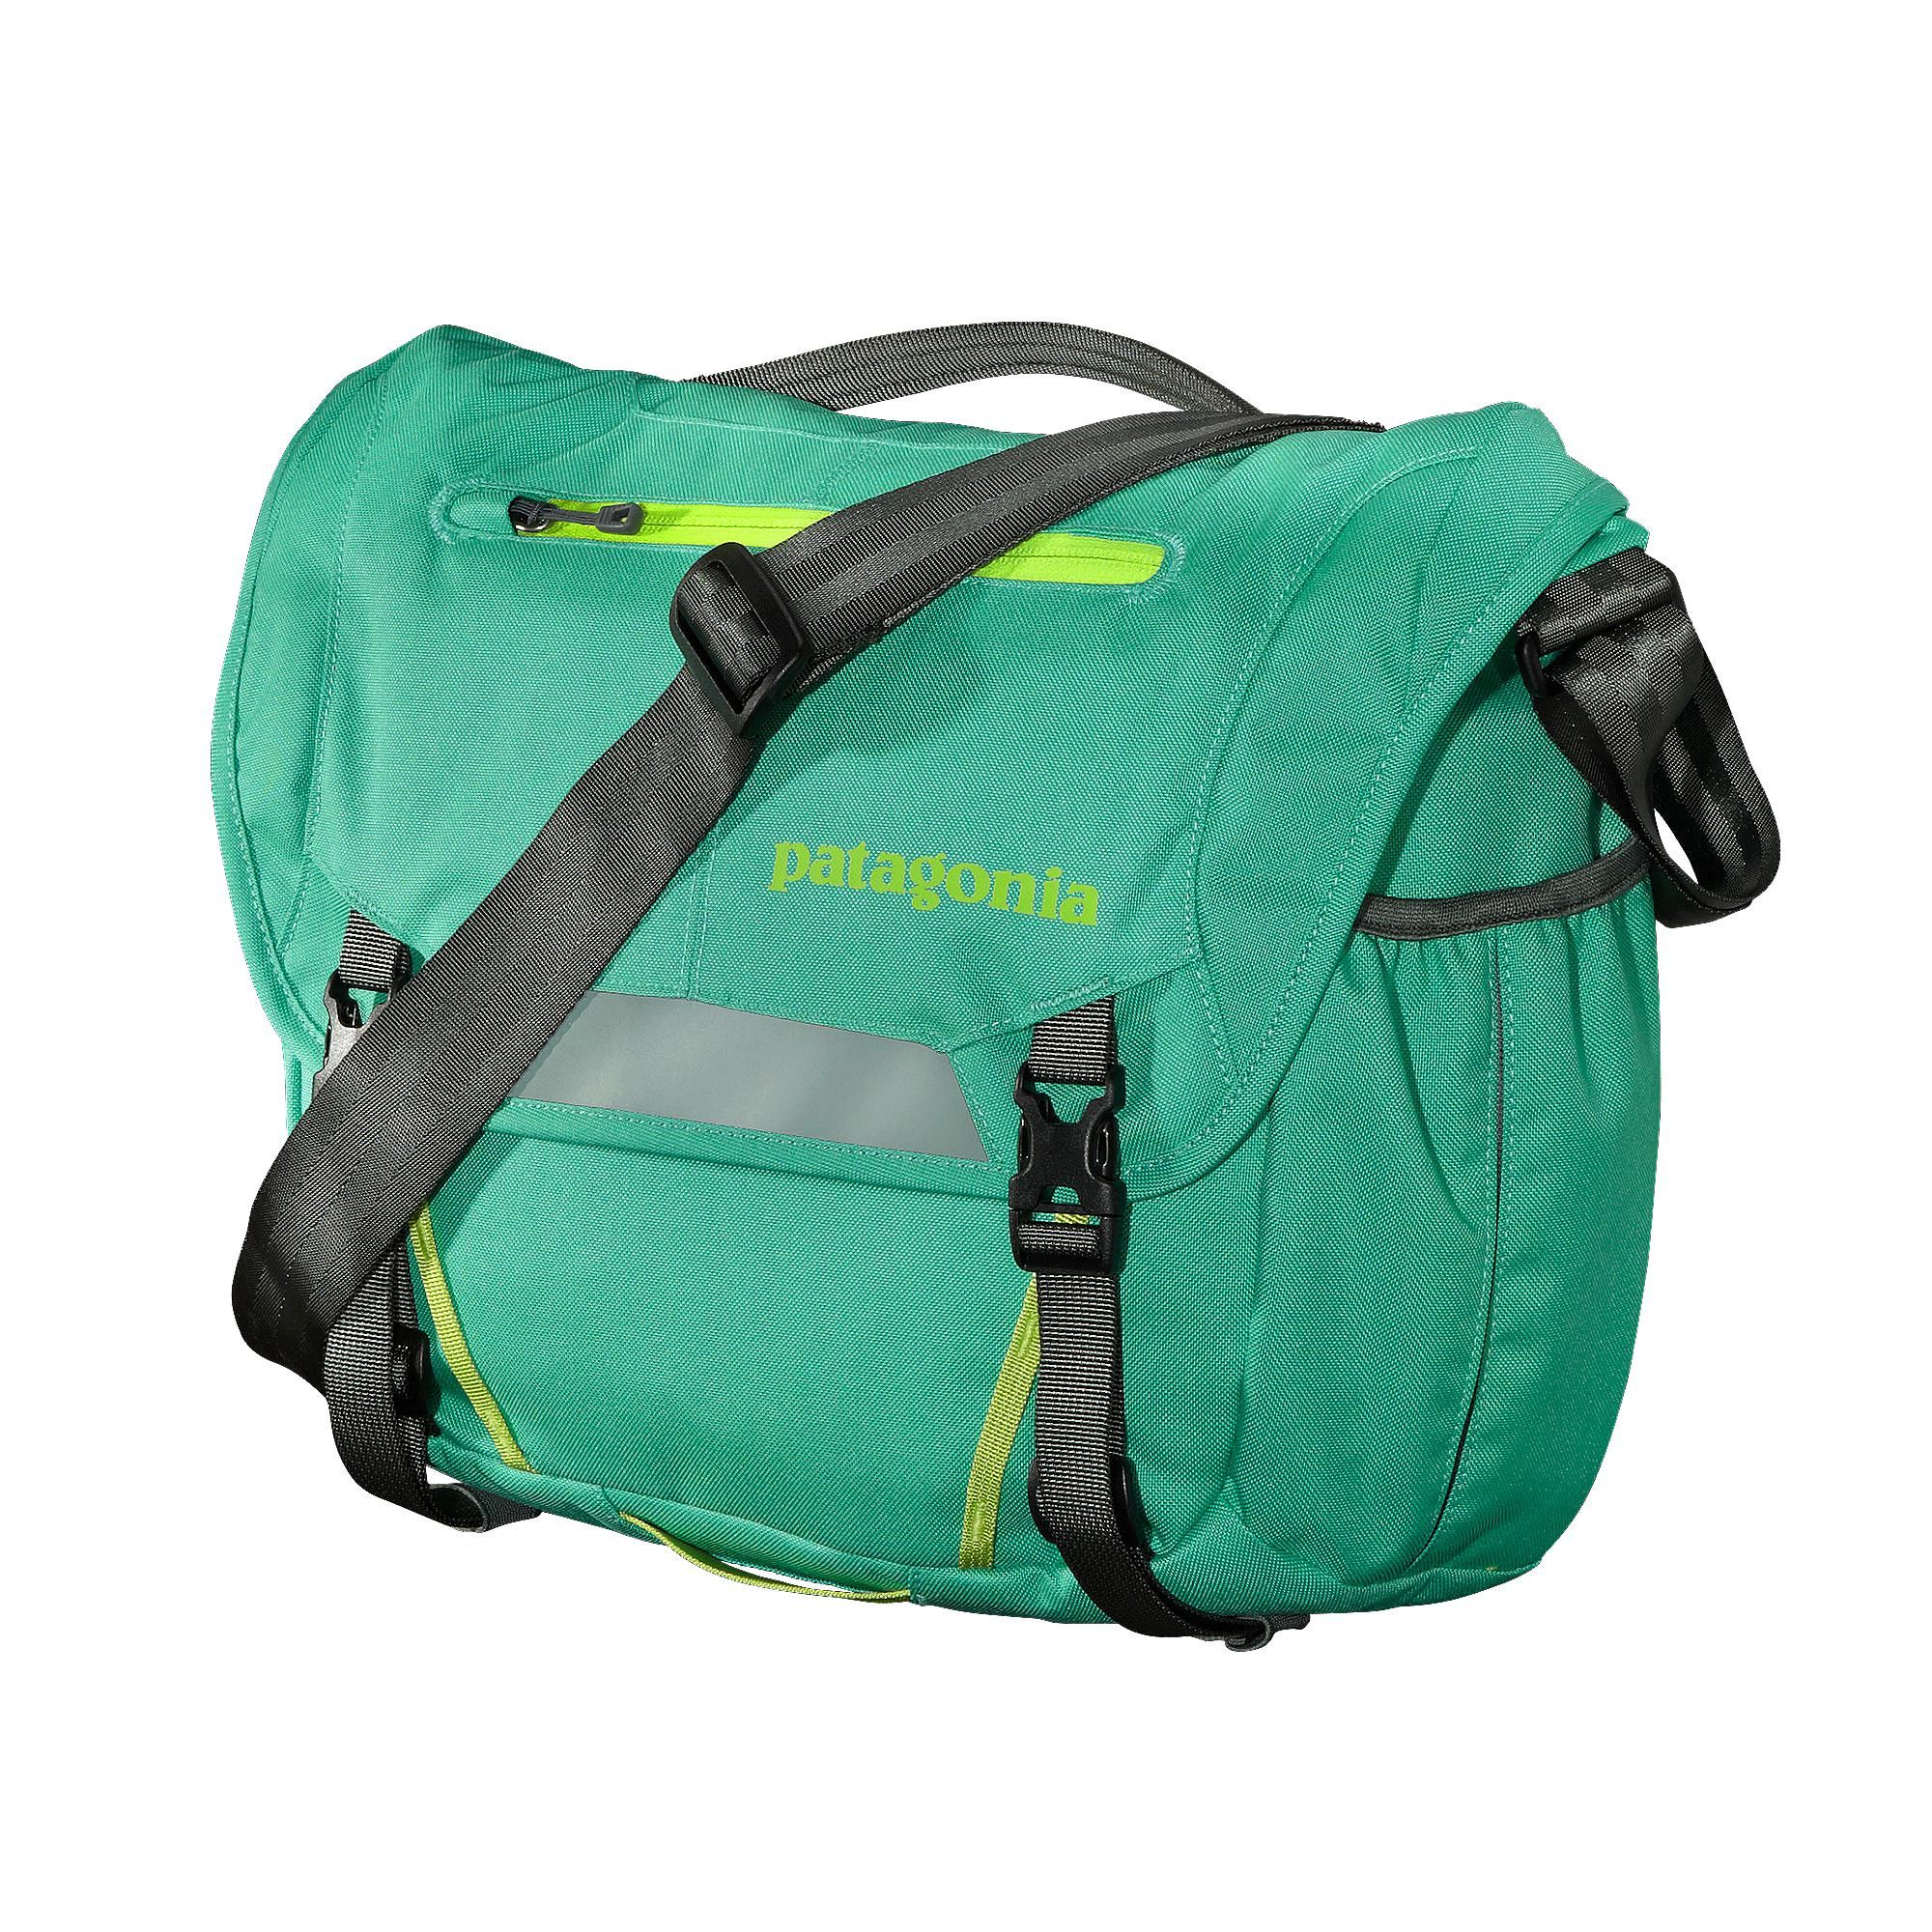 The Patagonia Minimass 12l Courier Bag